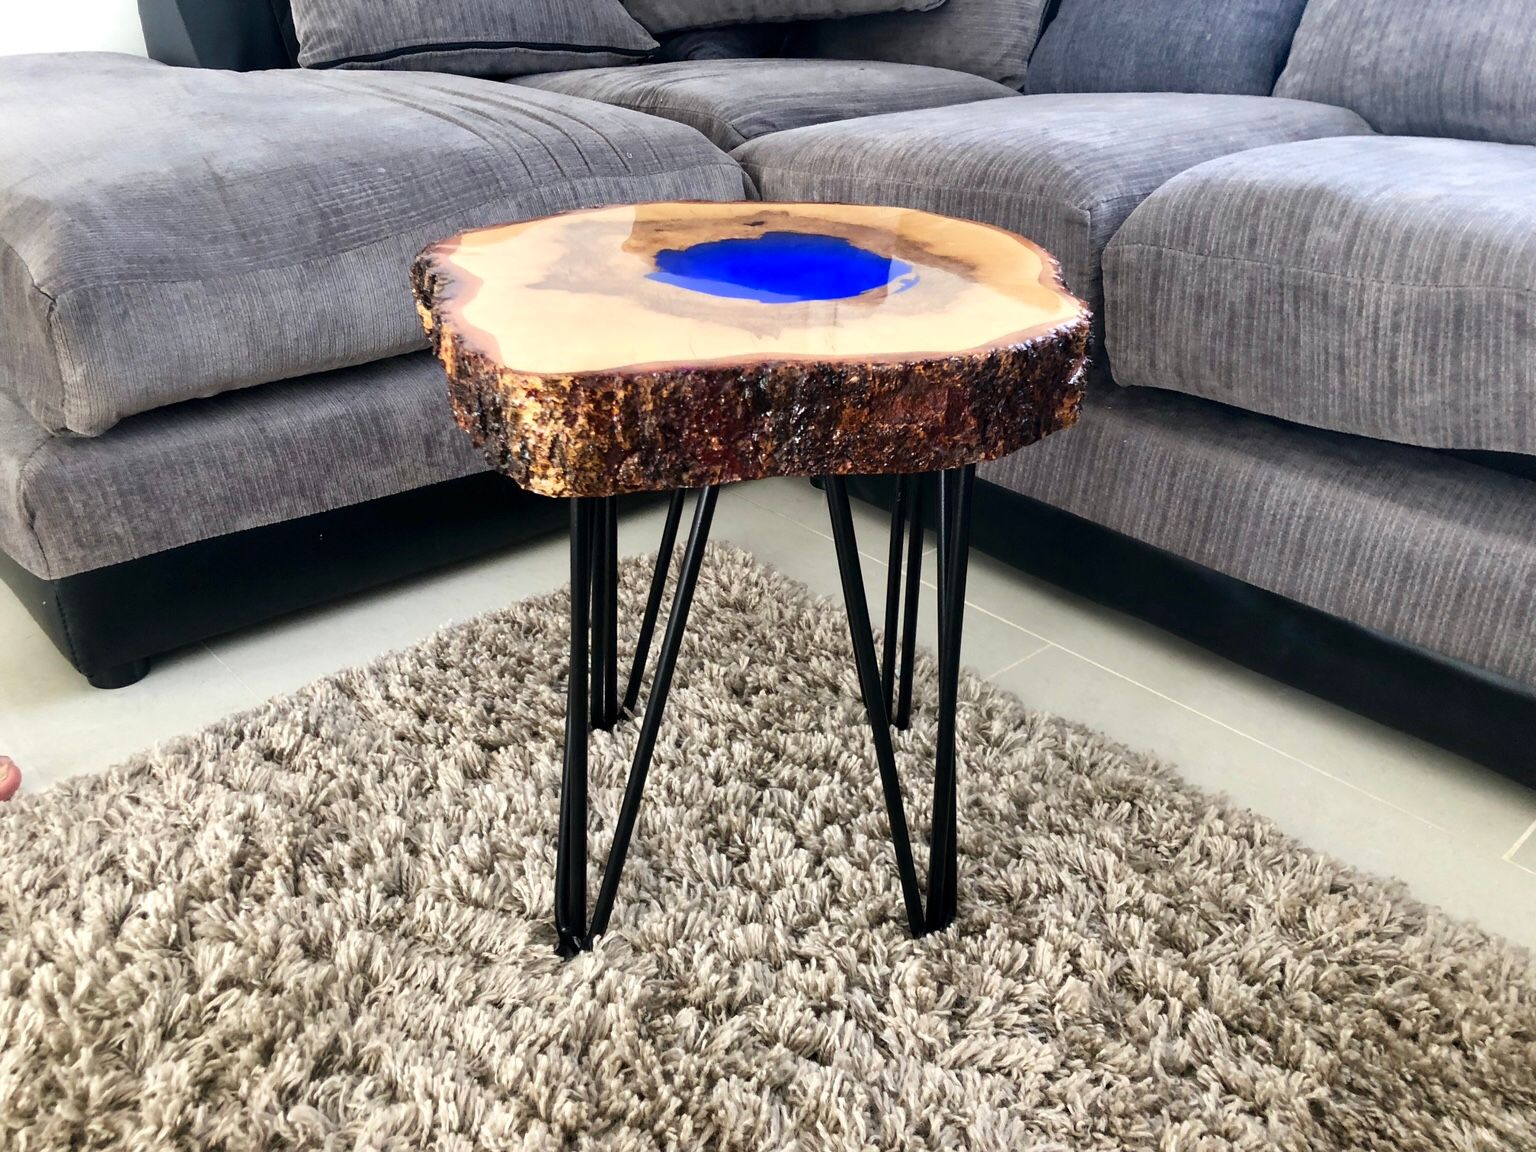 Table Resine Nouveau Coffee Side Table with Fluorescent Epoxy Resi Of 33 Inspirant Table Resine